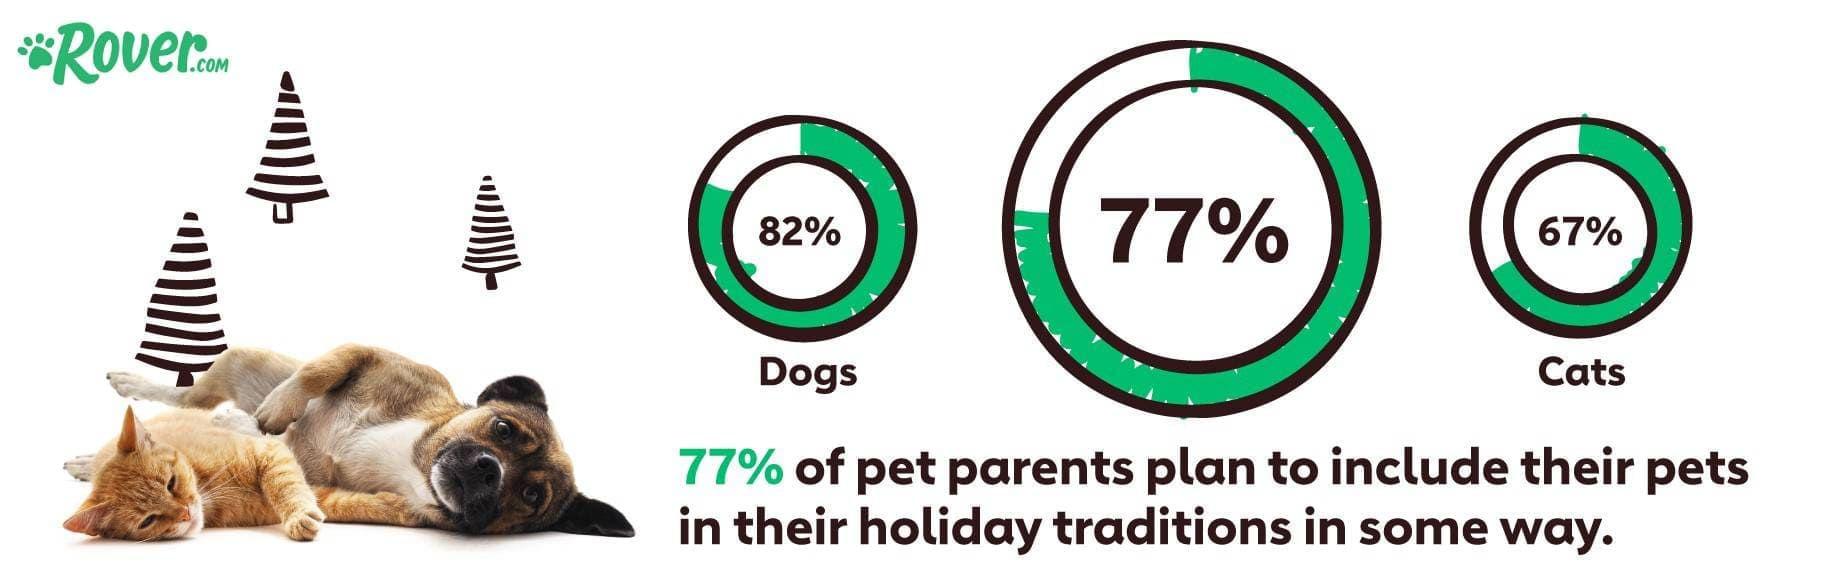 The Pet Effect: 2019 Holiday Shopping Report, Rover.com, holiday shopping statistics 2019, holiday marketing trends 2019, holiday shopping insights